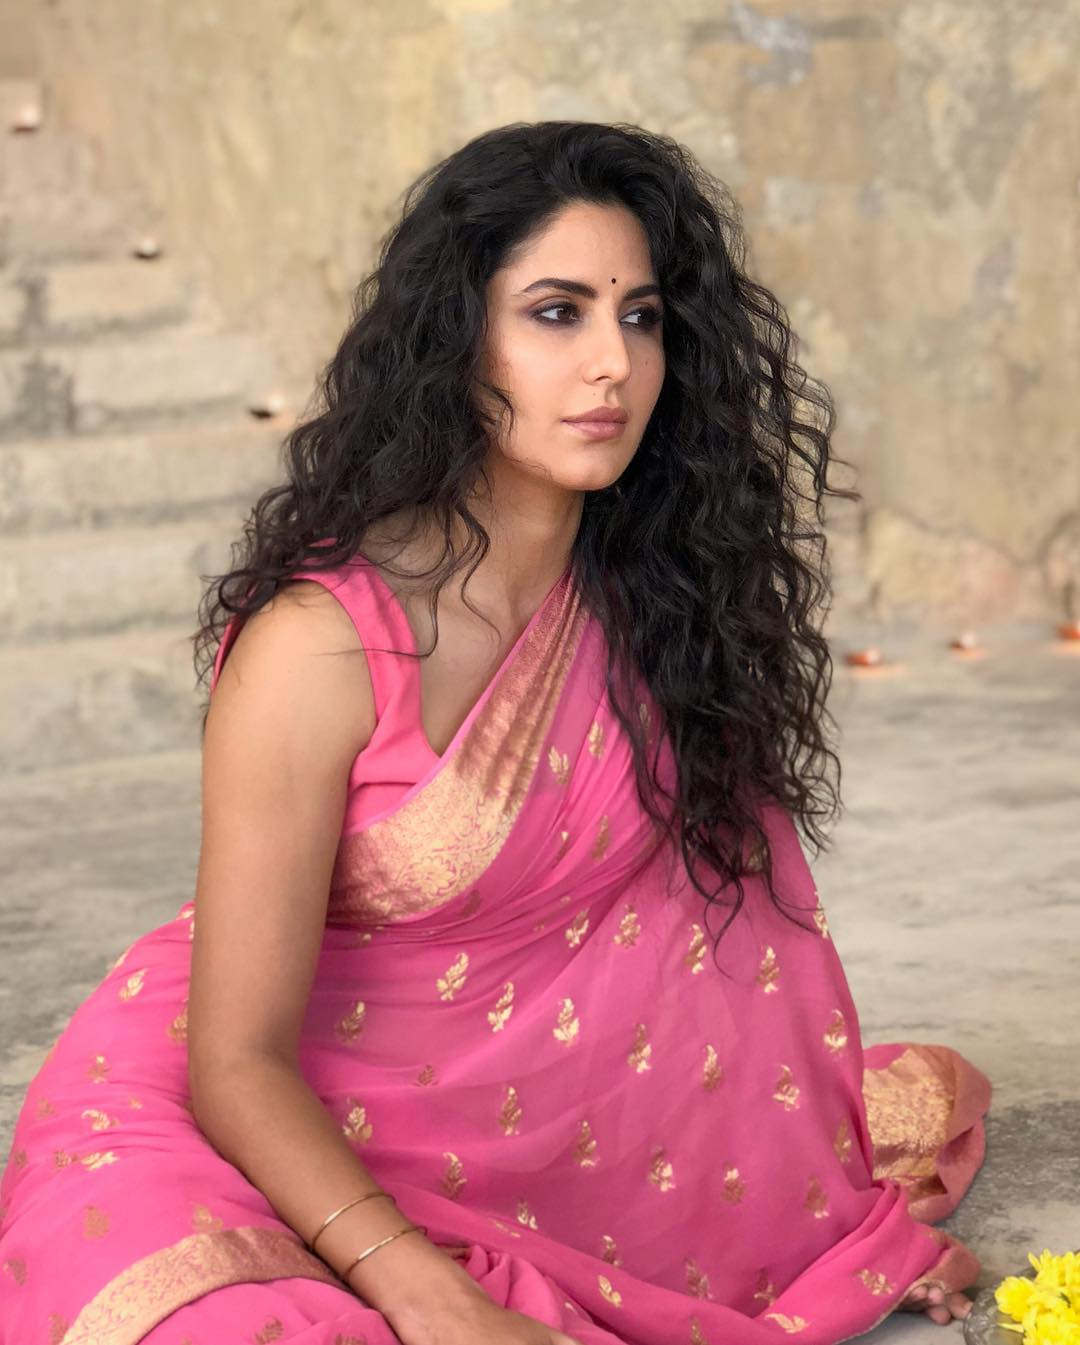 Once Again Katrina Kaif Prove That She is the SAREE Queen of Bollywood